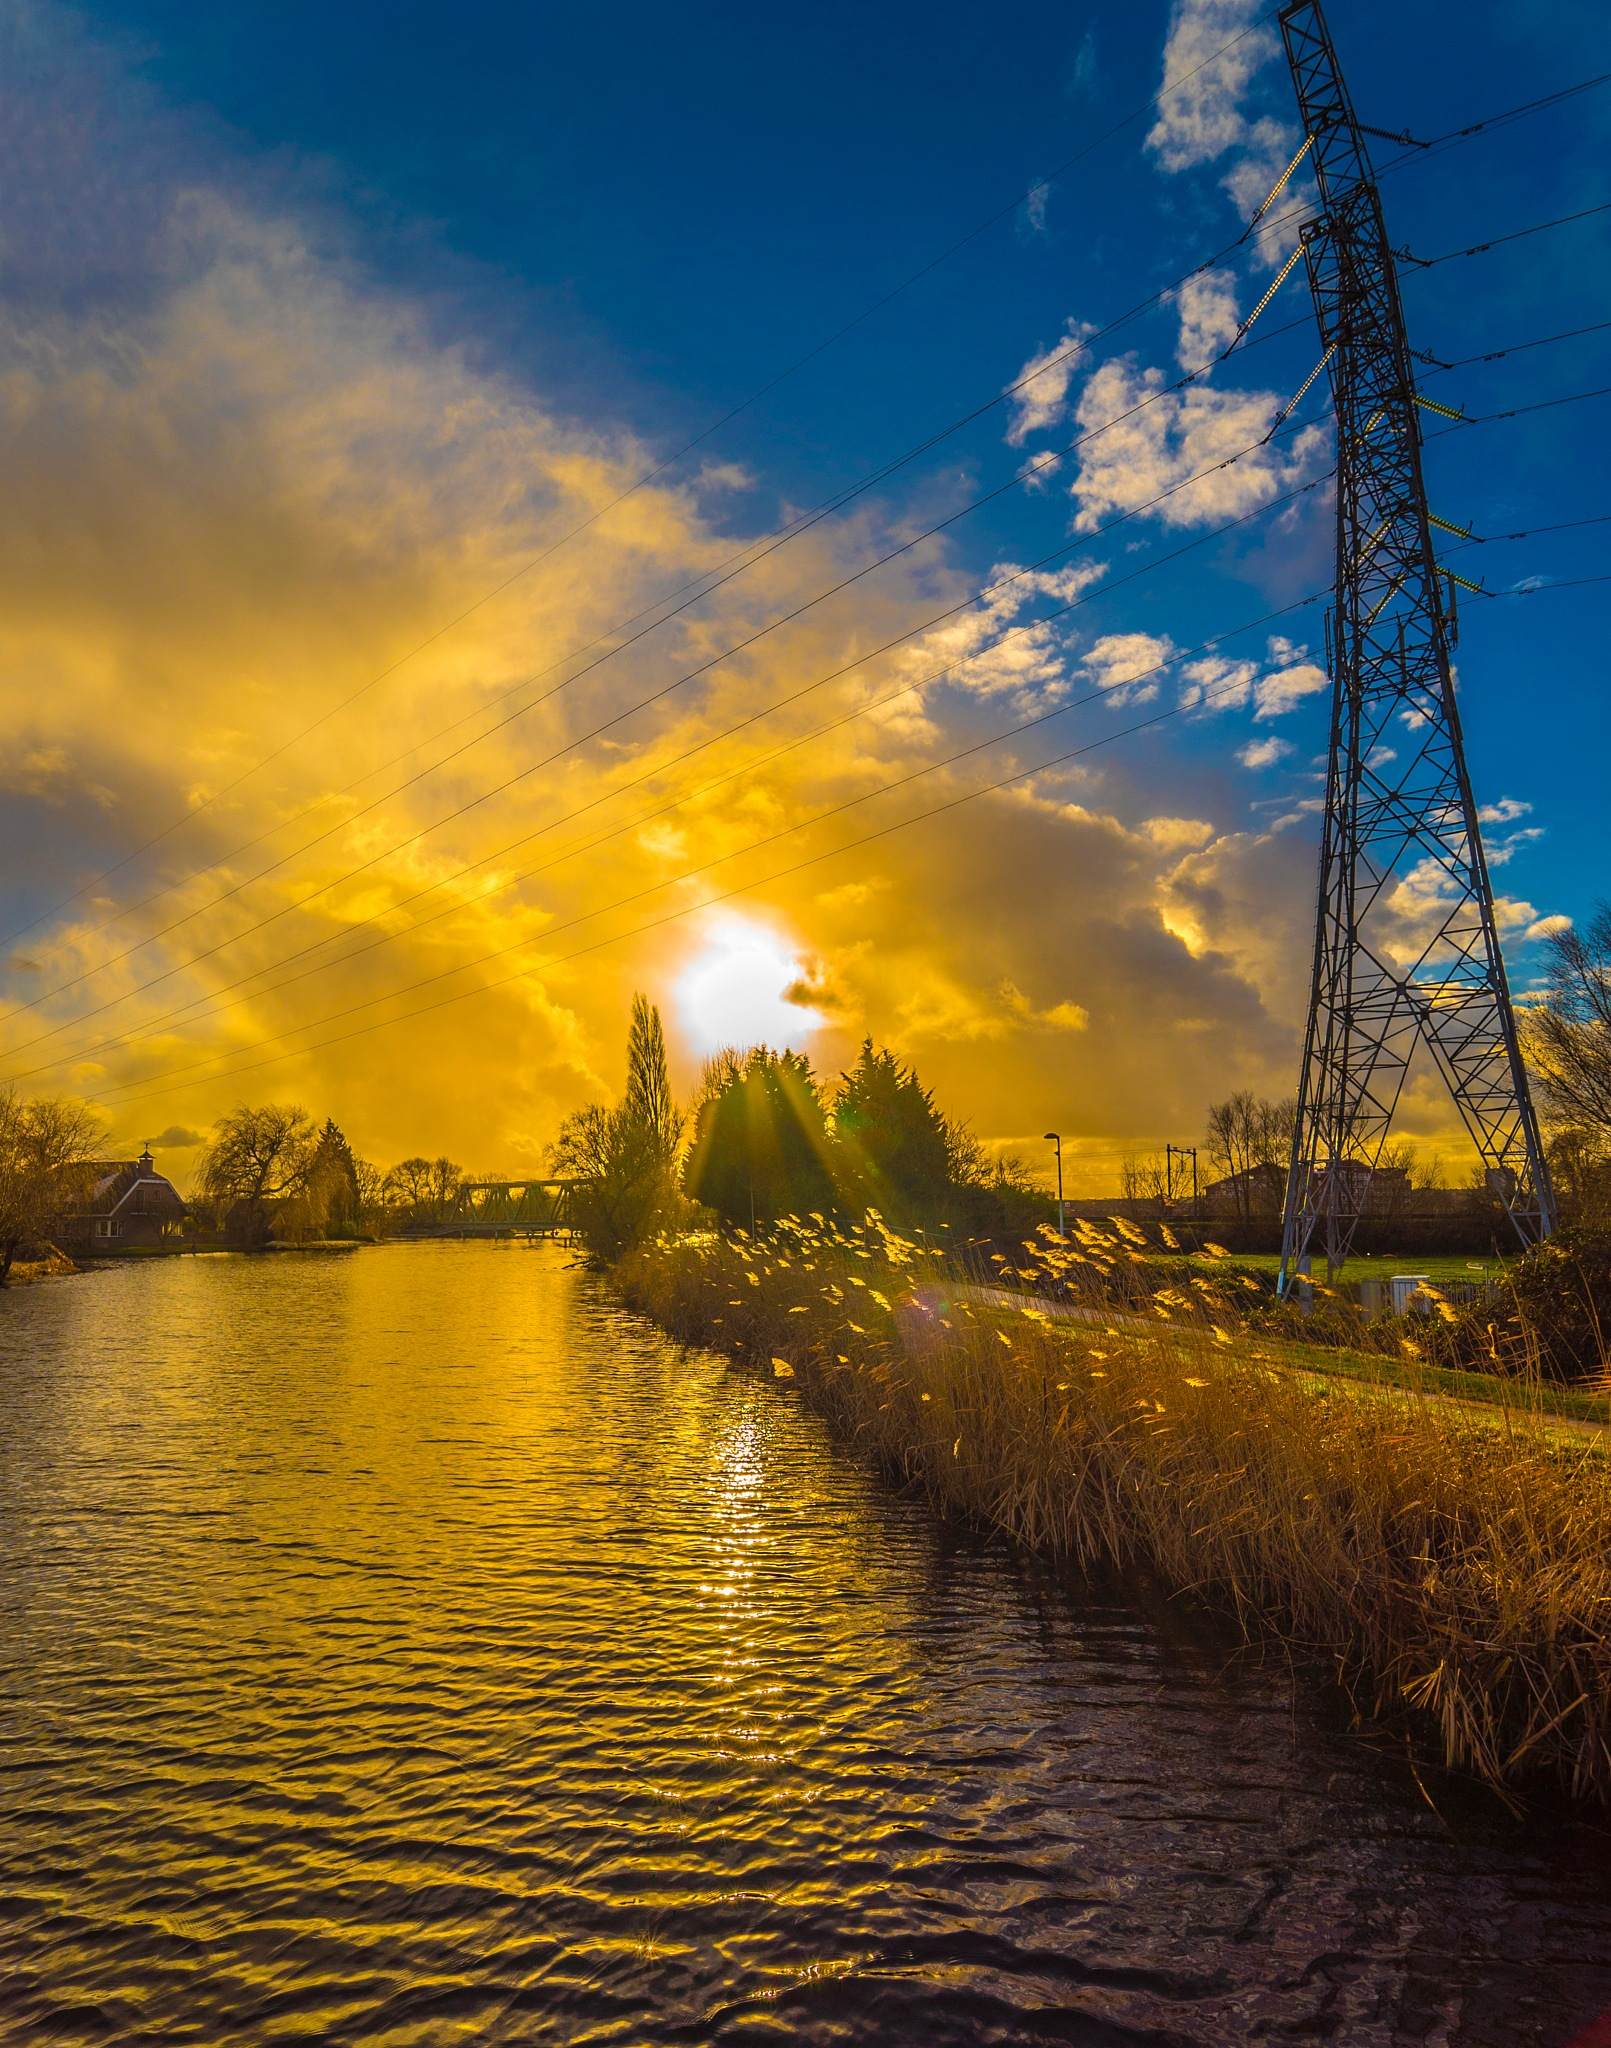 Burning yellow clouds by fred.leeflang.7